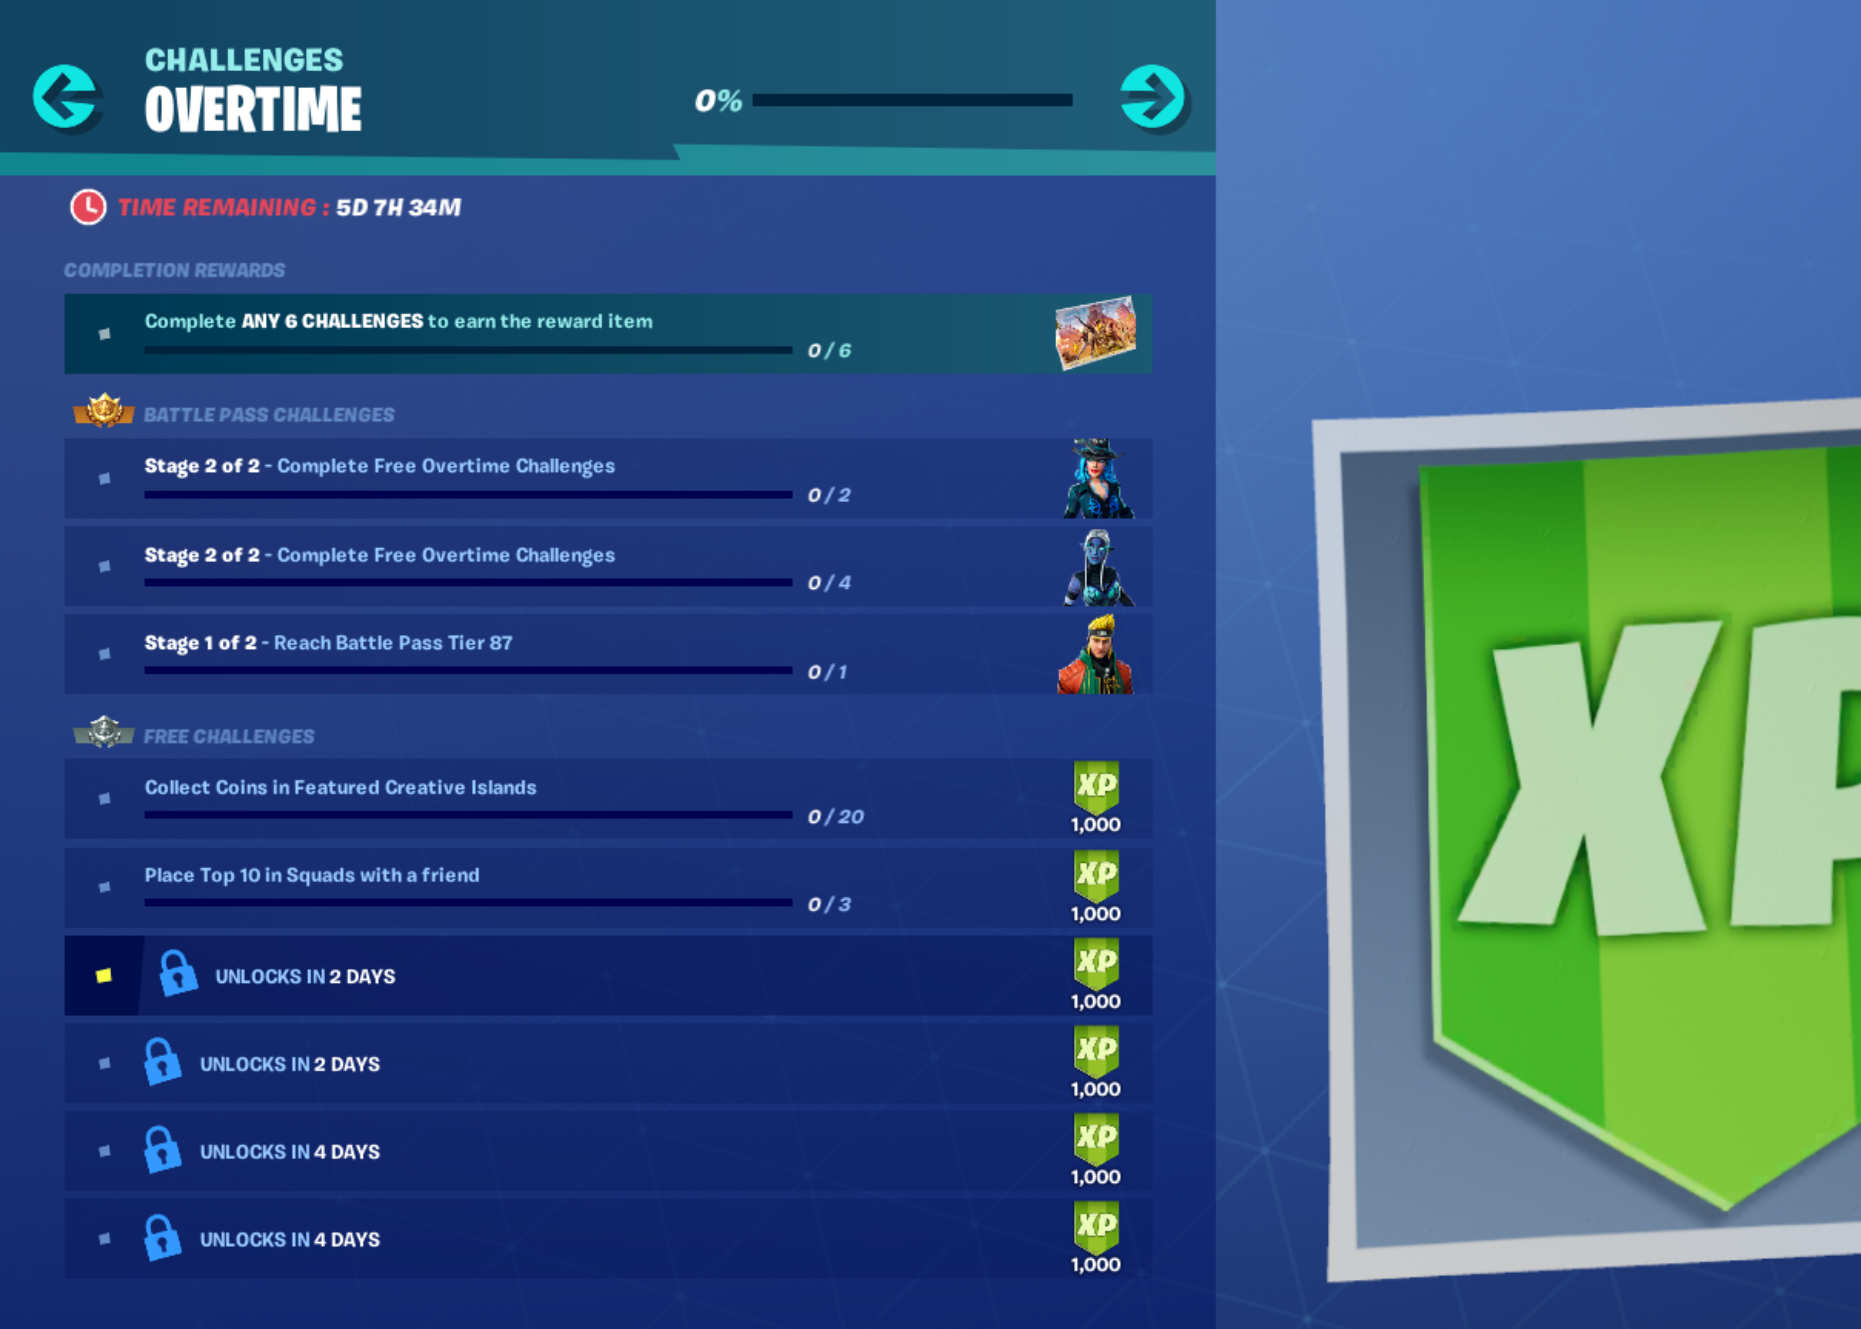 new sidewinder ember and master key styles are available for completing 2 4 and 6 overtime challenges but these are only open to battle pass holders - new fortnite challenges season 8